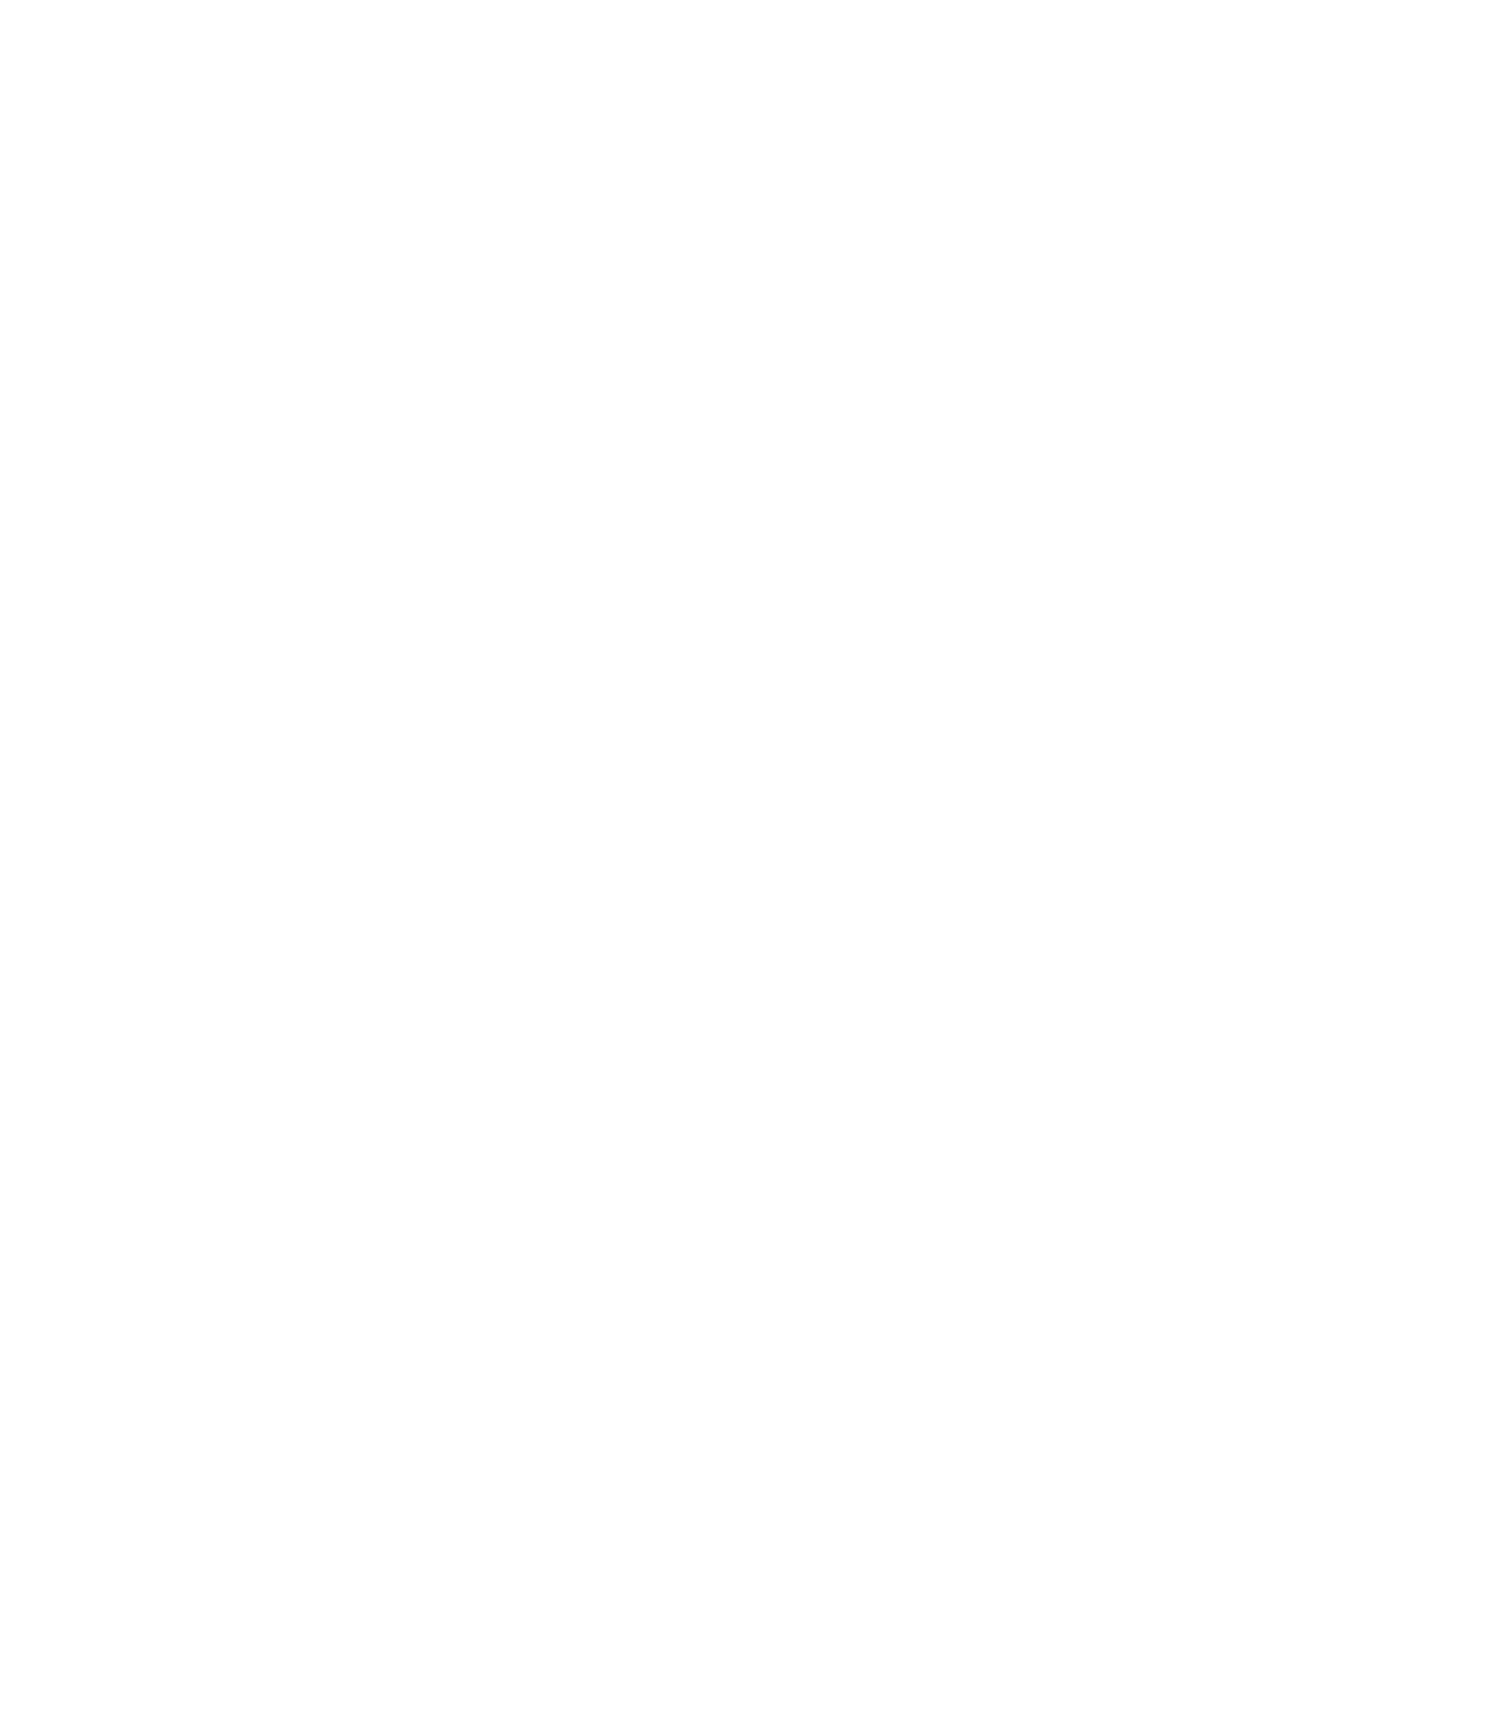 Om Tribe Yoga Retreats